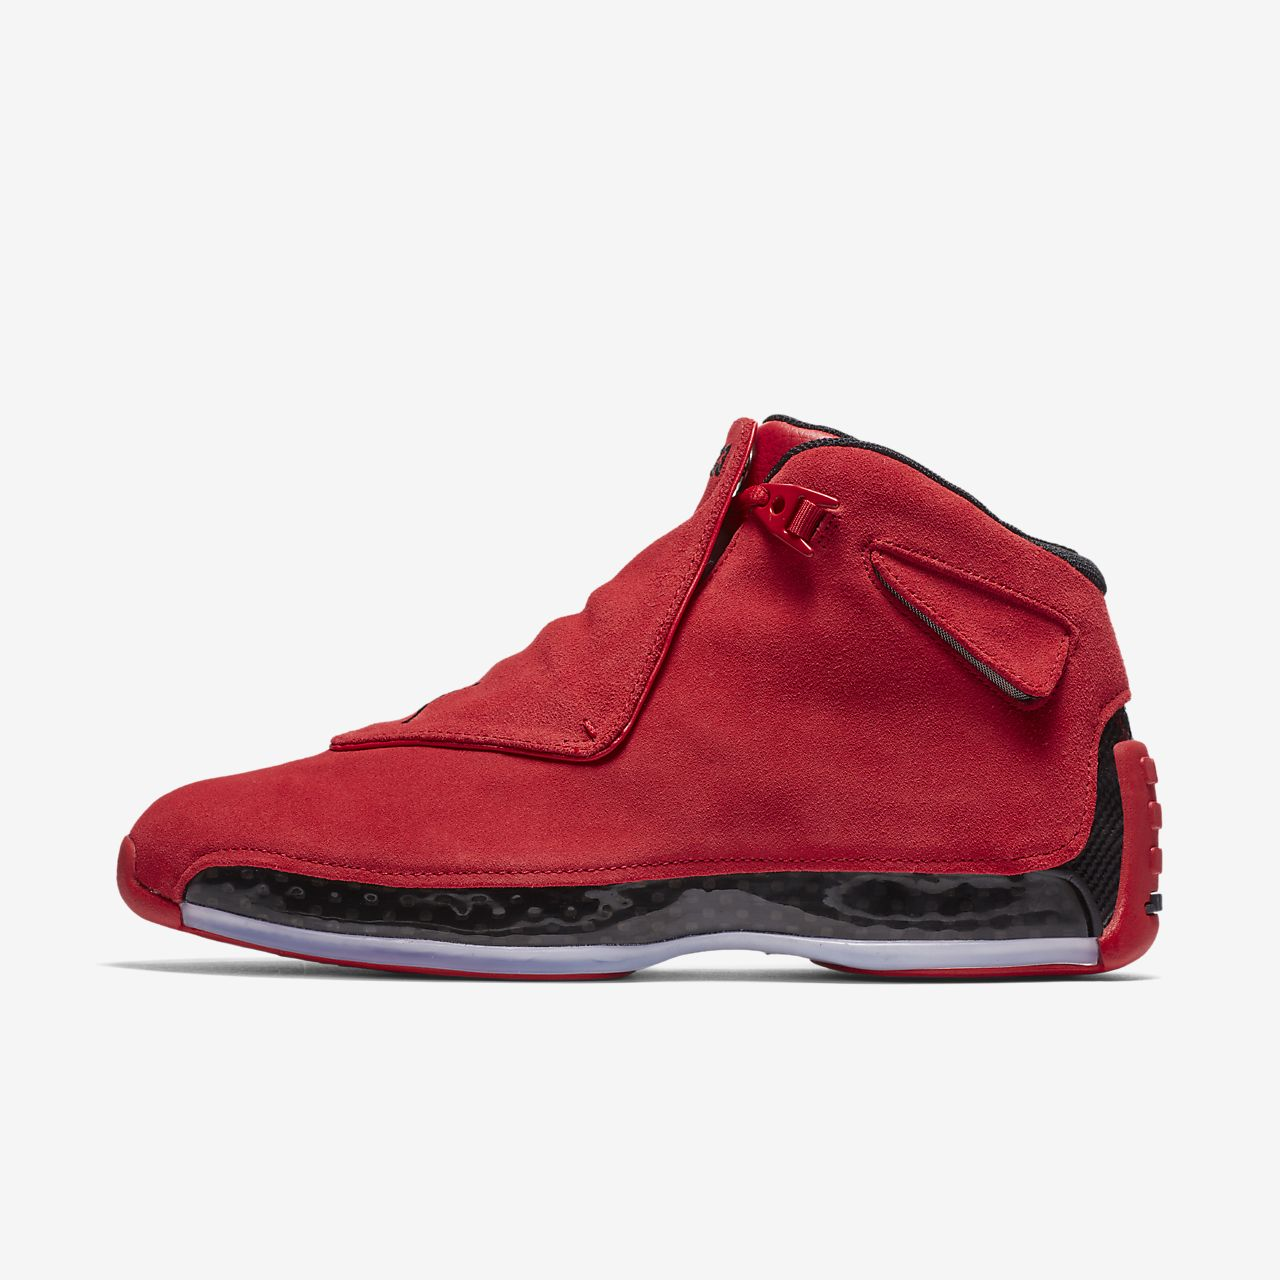 jordan 18 retro men red